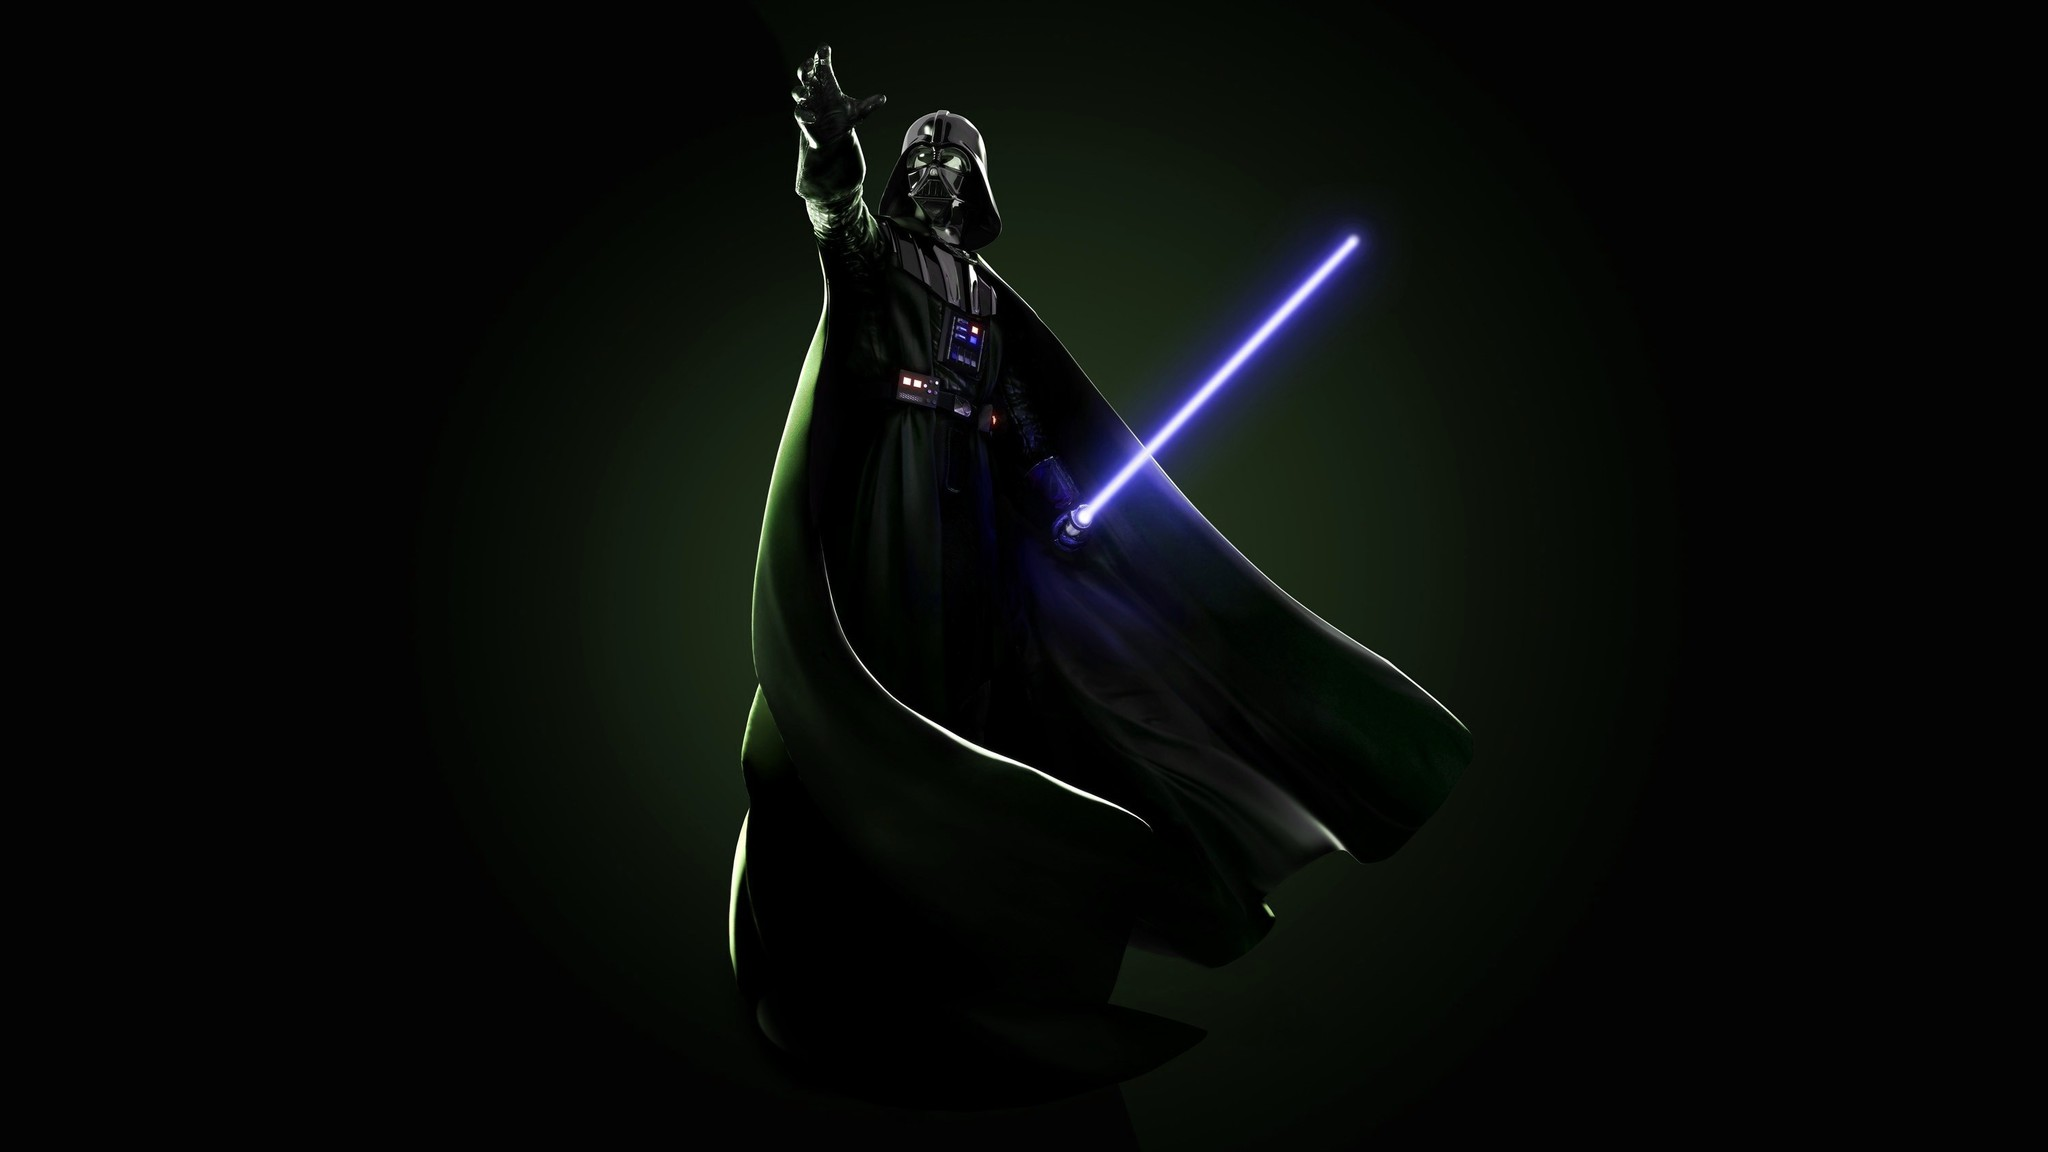 Darth Vader Star Wars Wallpaper Lego